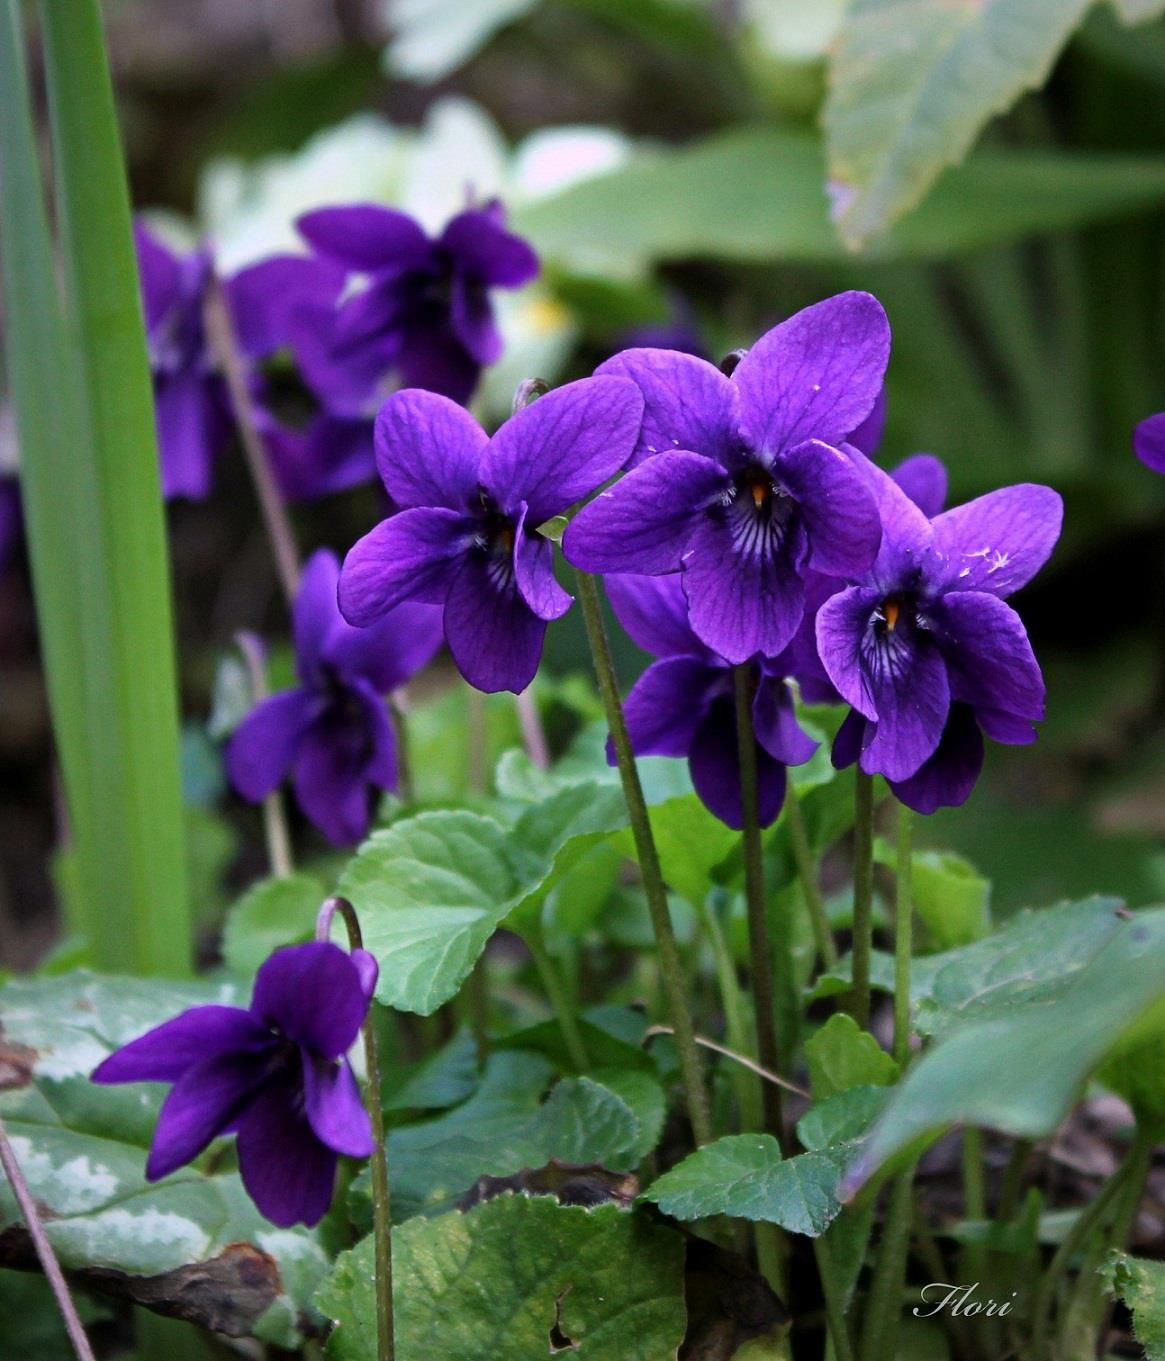 Violets i love violets they grew wild around where i for Violet home